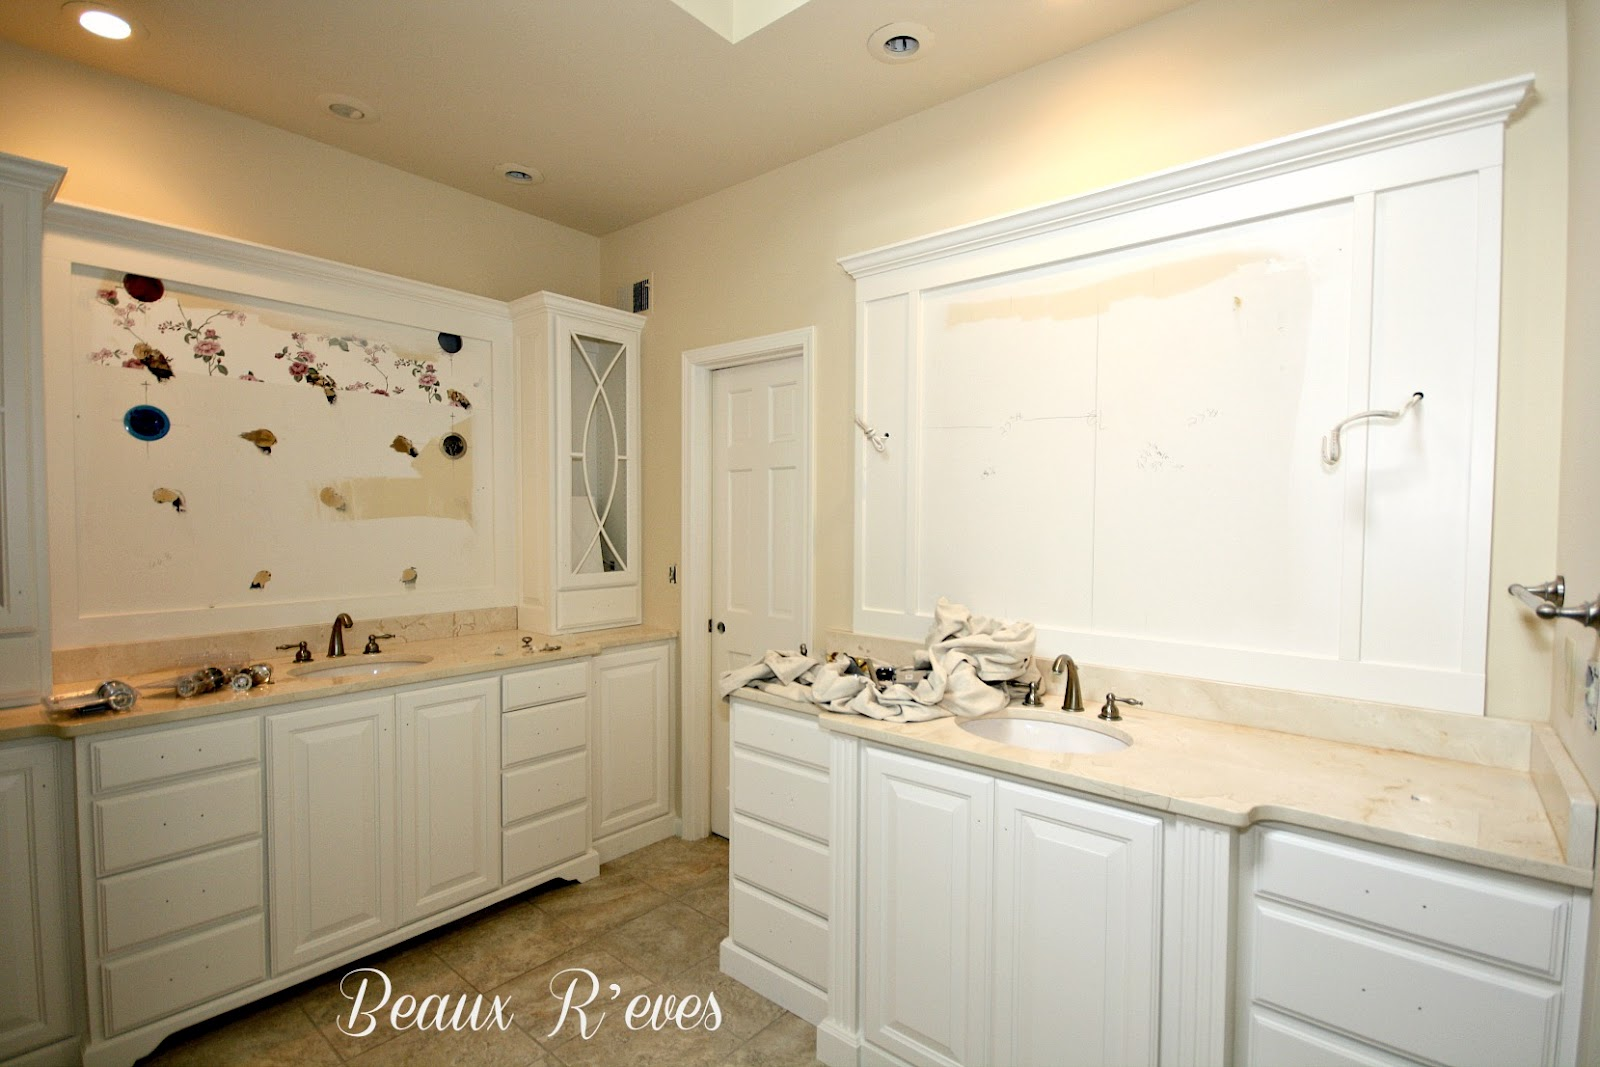 Bathroom with White Trim and Cabinet